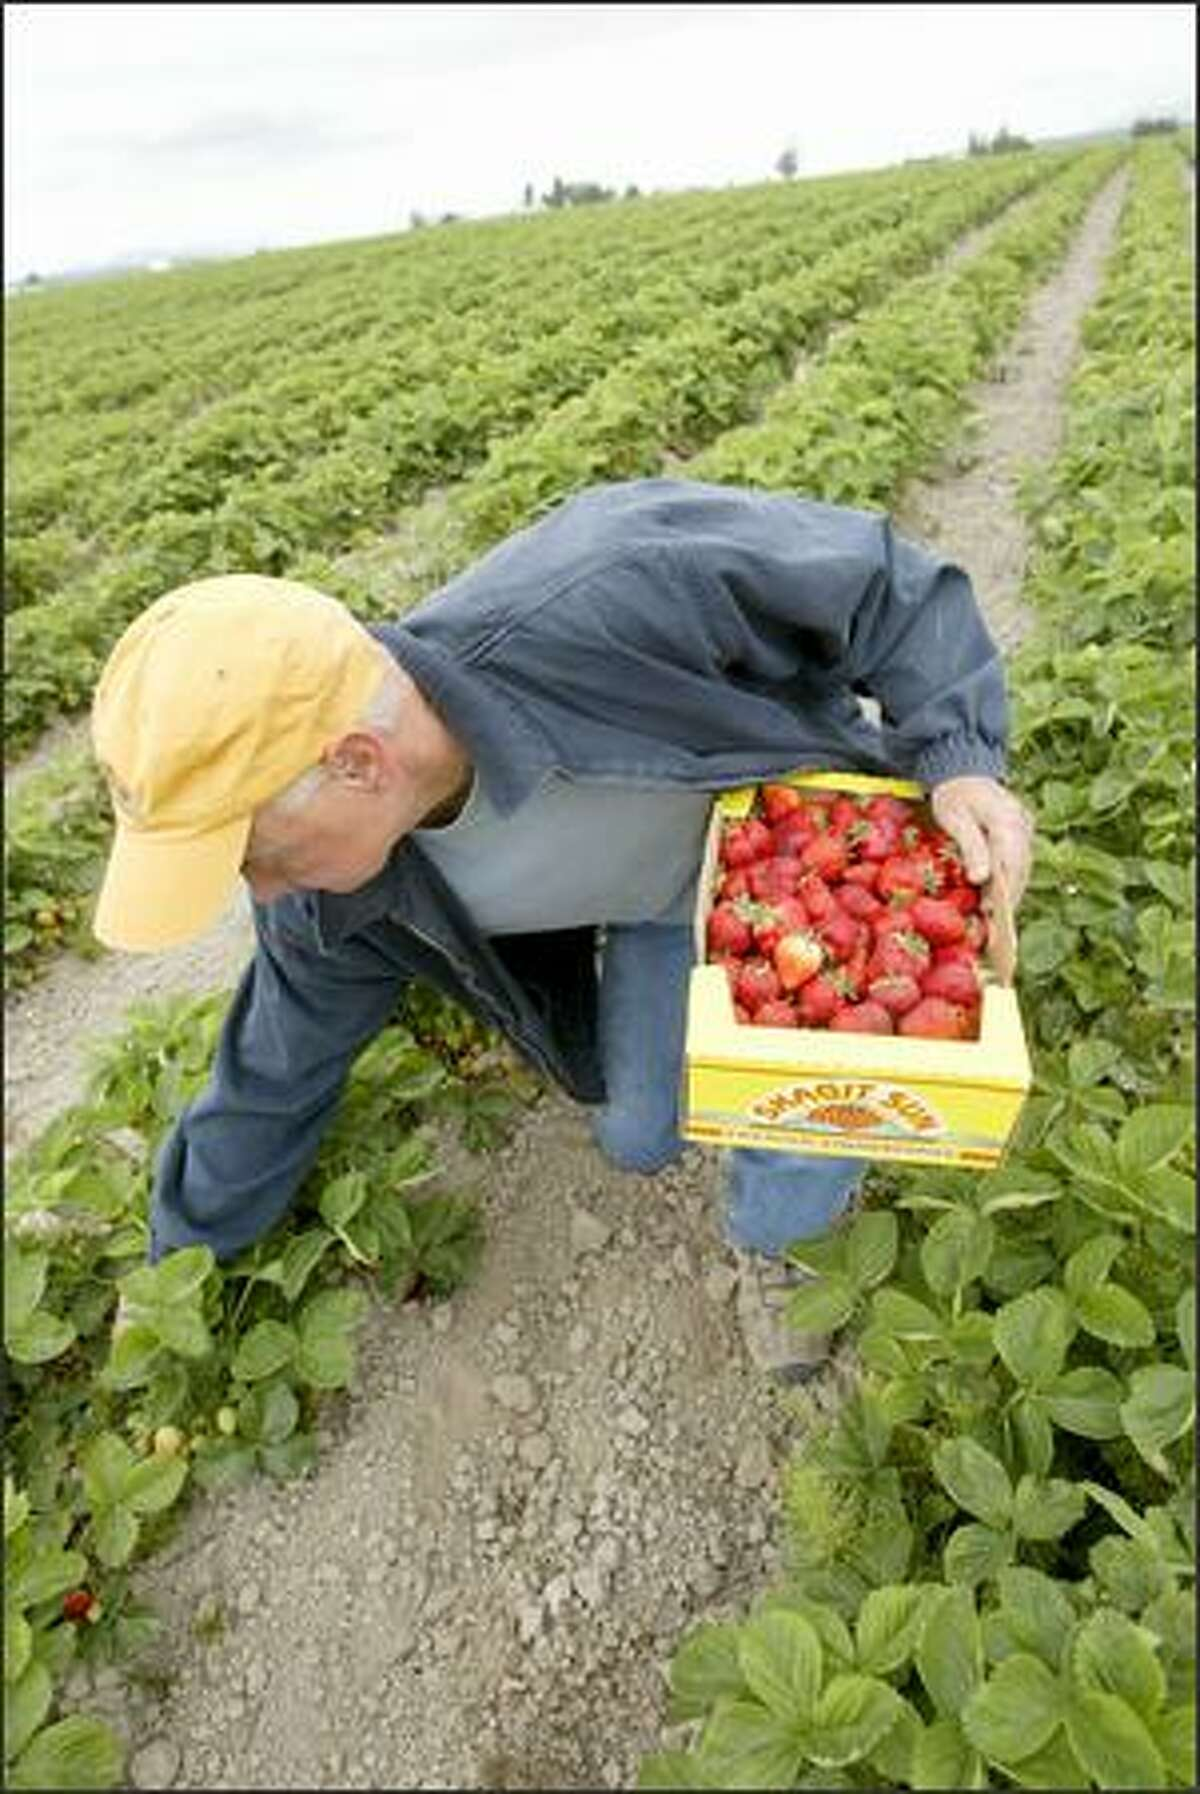 Don Kruse, at his strawberry farm last week, had pickers out Saturday. He said he is concerned about having enough labor to harvest the early crop.